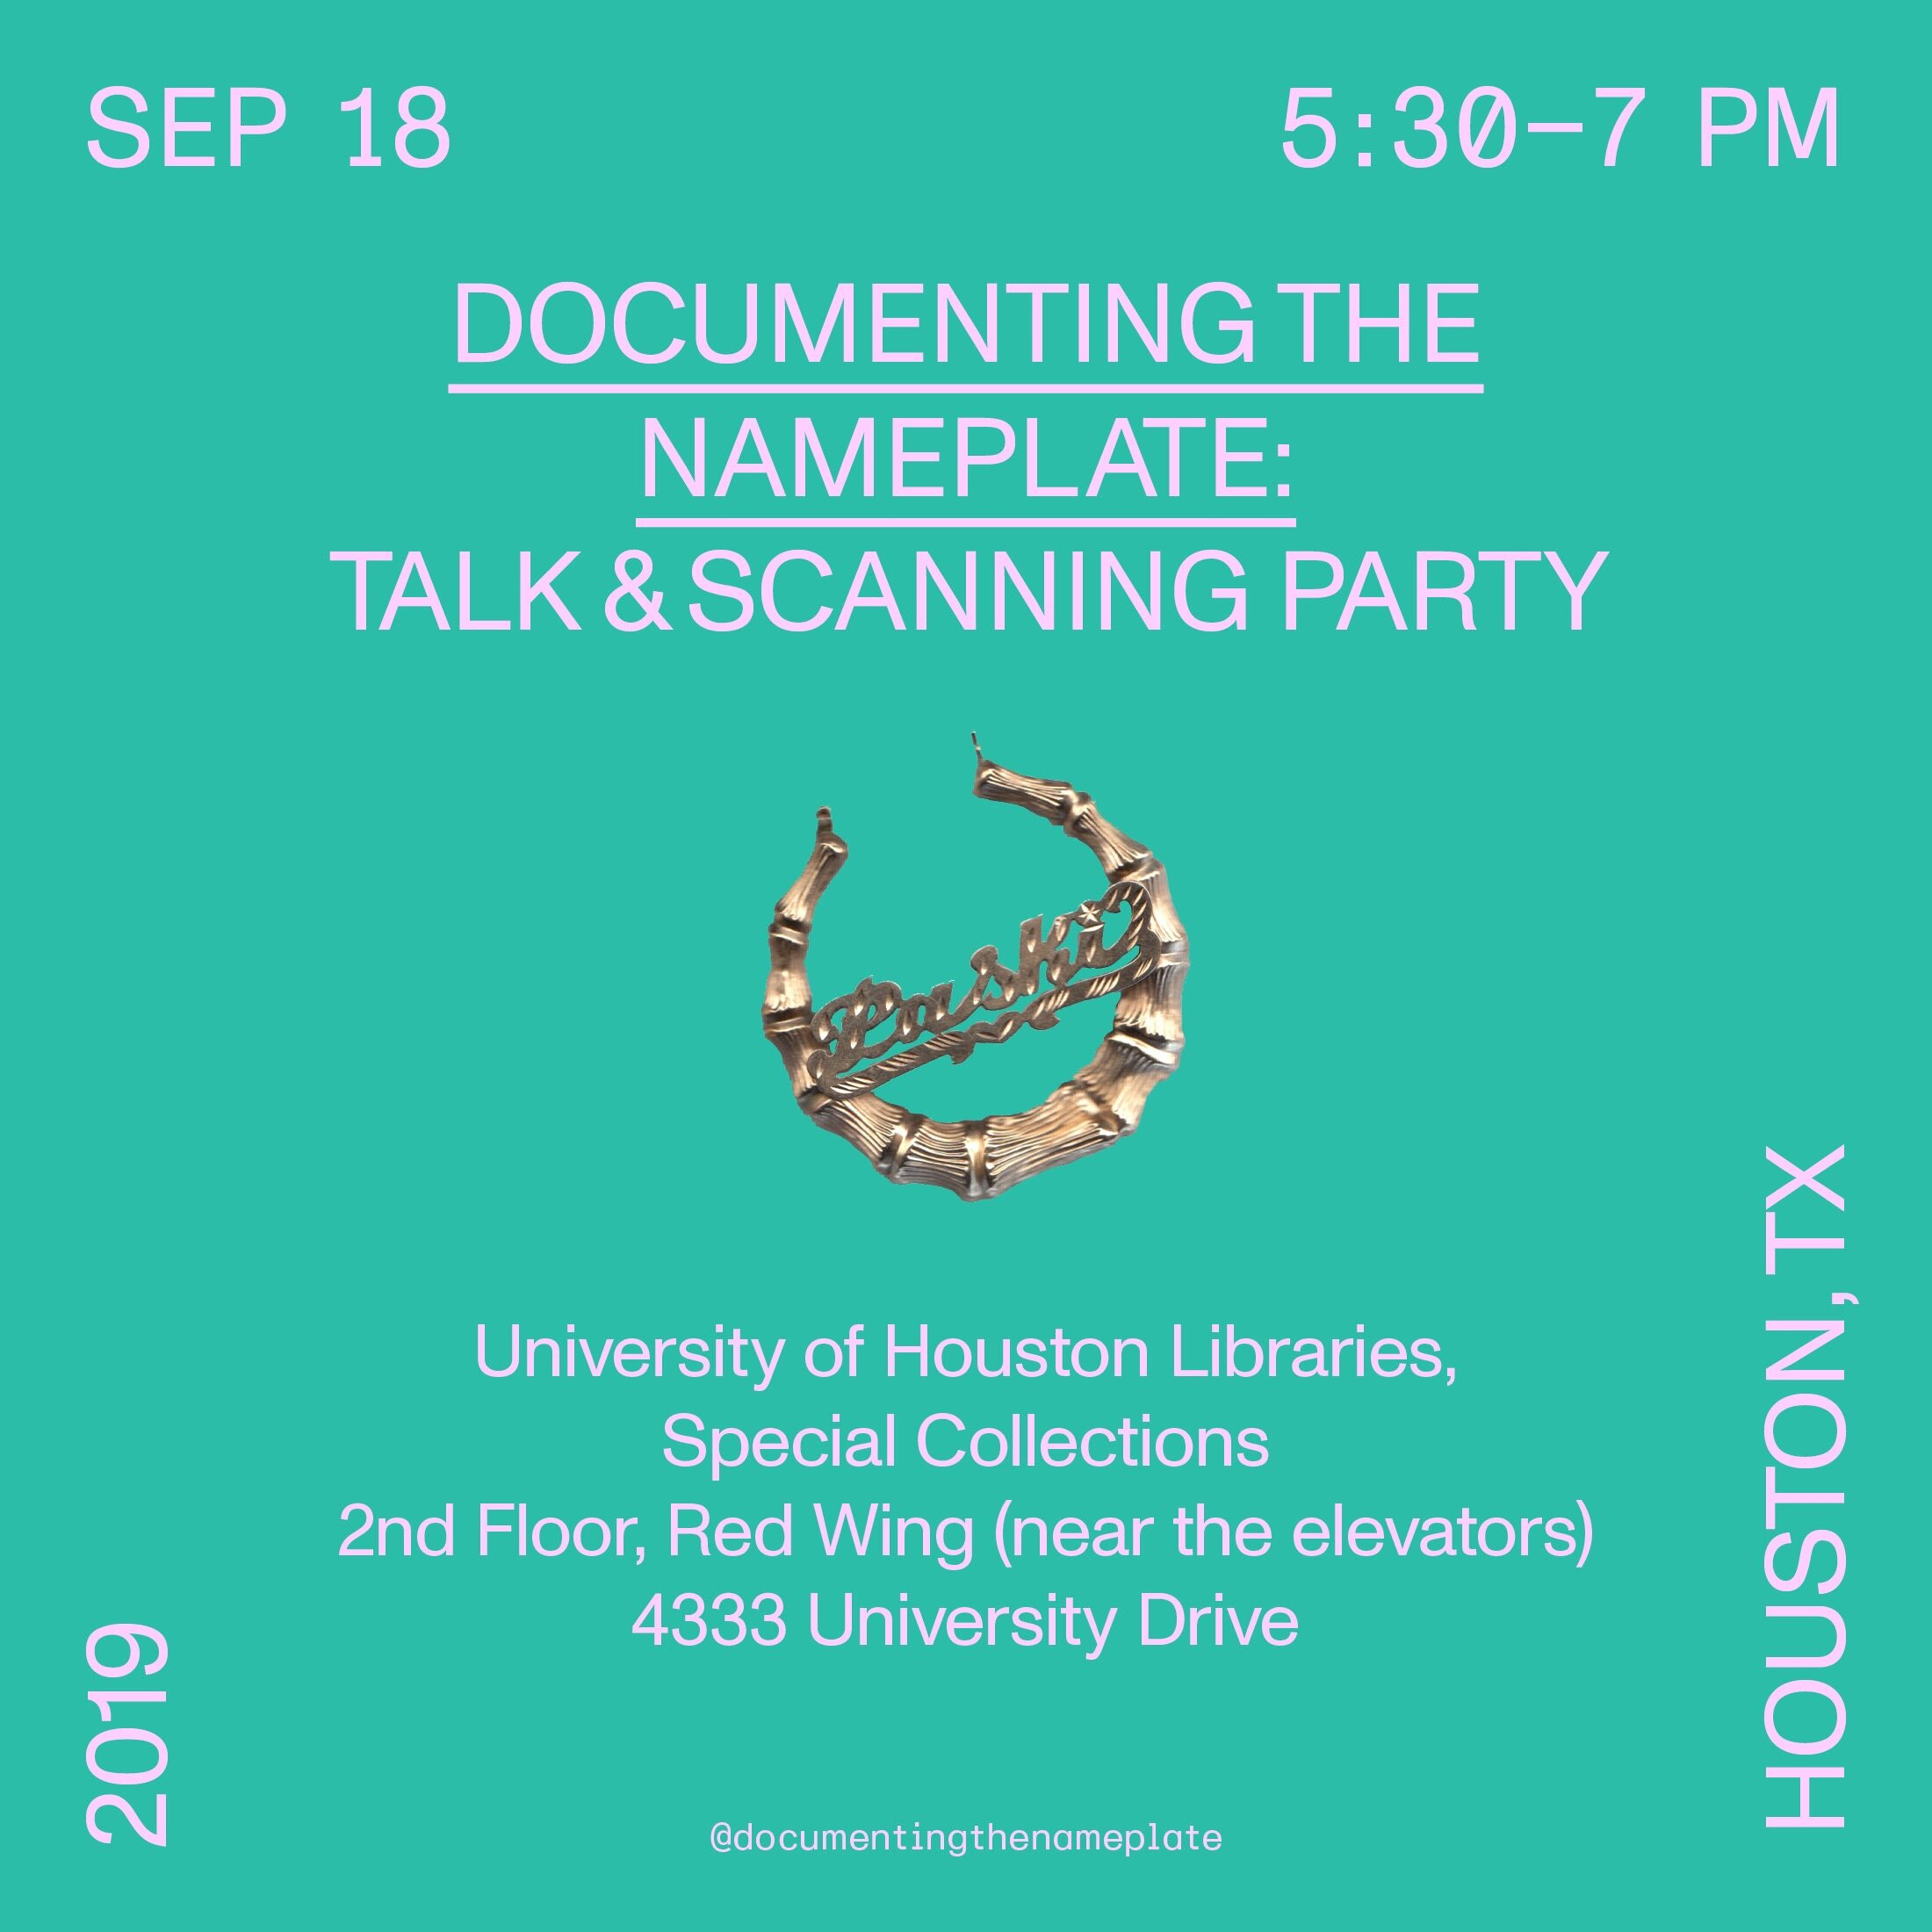 Lecture on 9/18/19